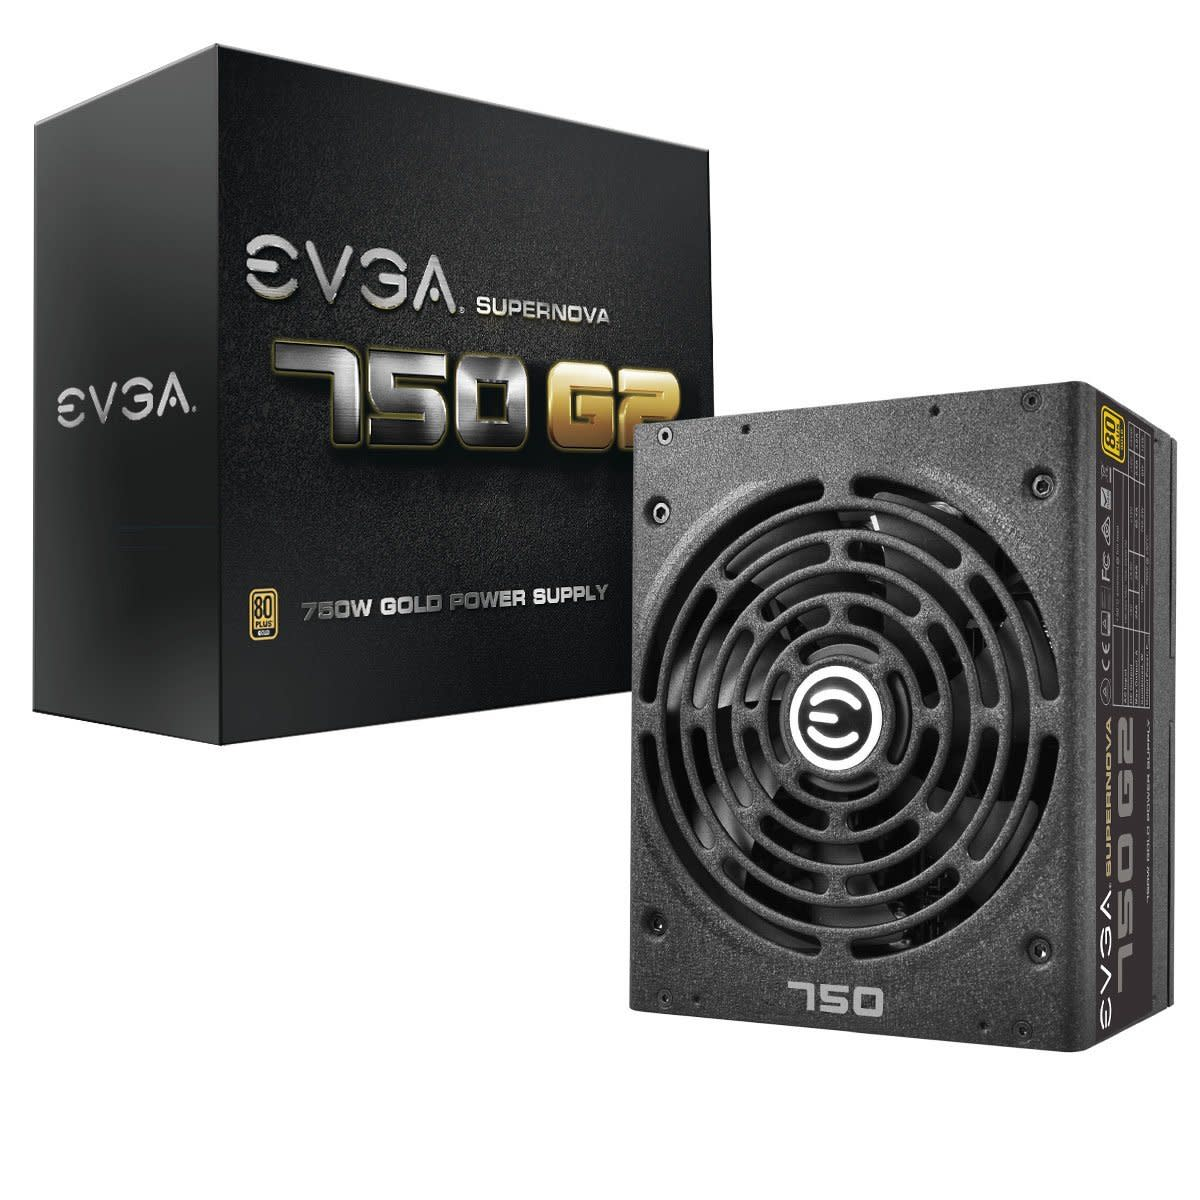 EVGA's SupserNova series gives you a tier 1 Gold certified option at an affordable price.